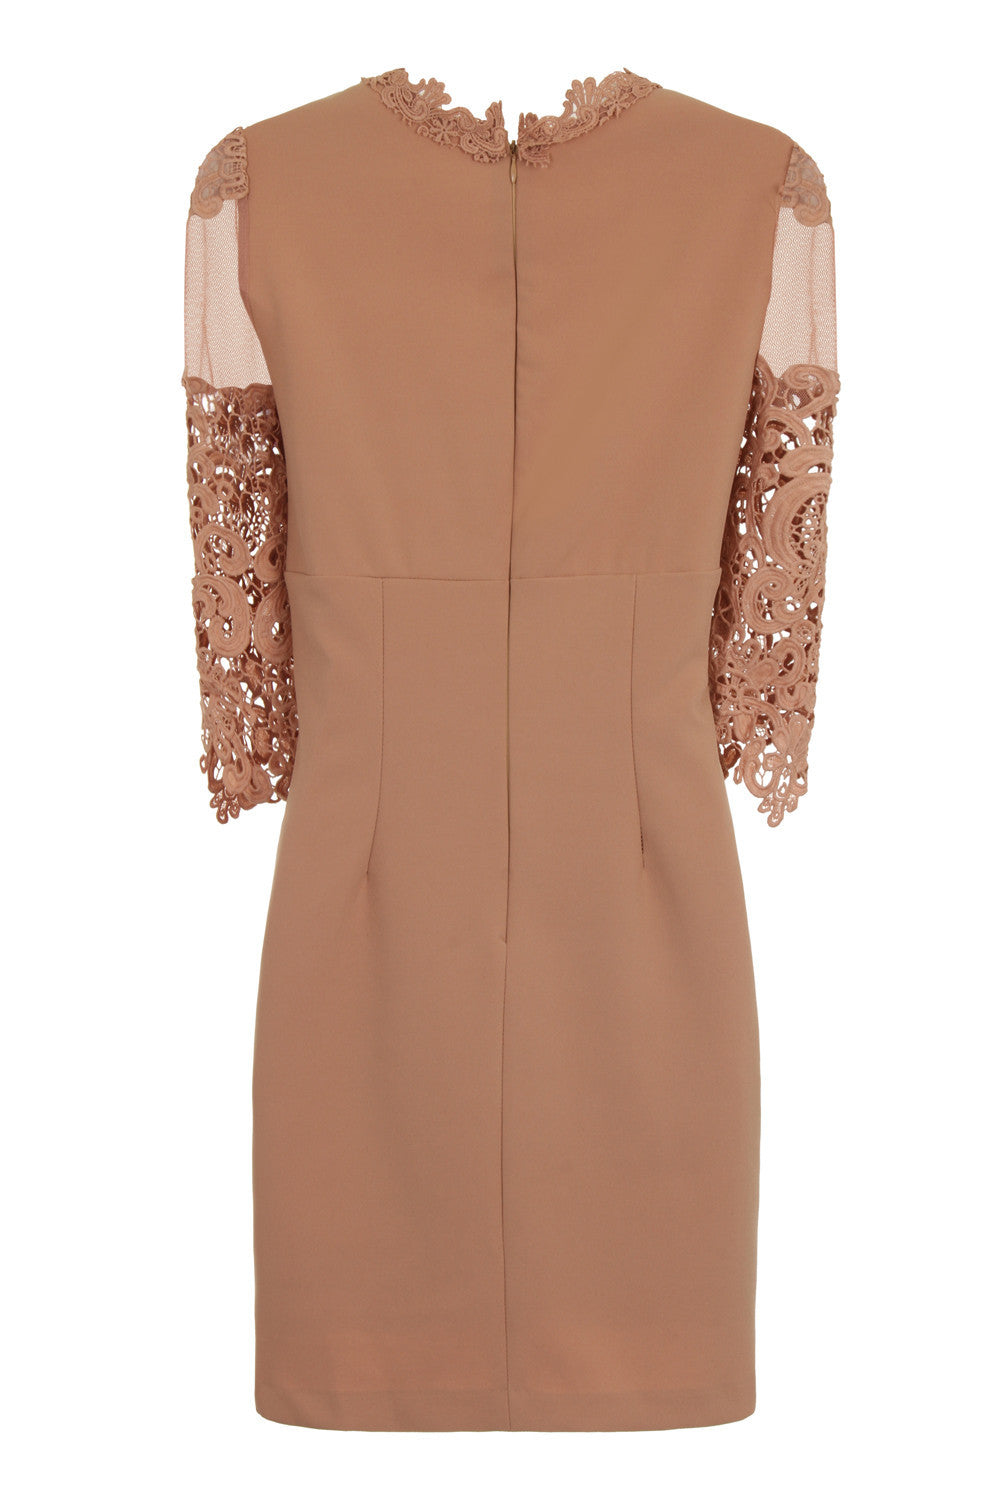 SHEER SHOULDER BODYCON DRESS - BEIGE - Darccy & Soma London